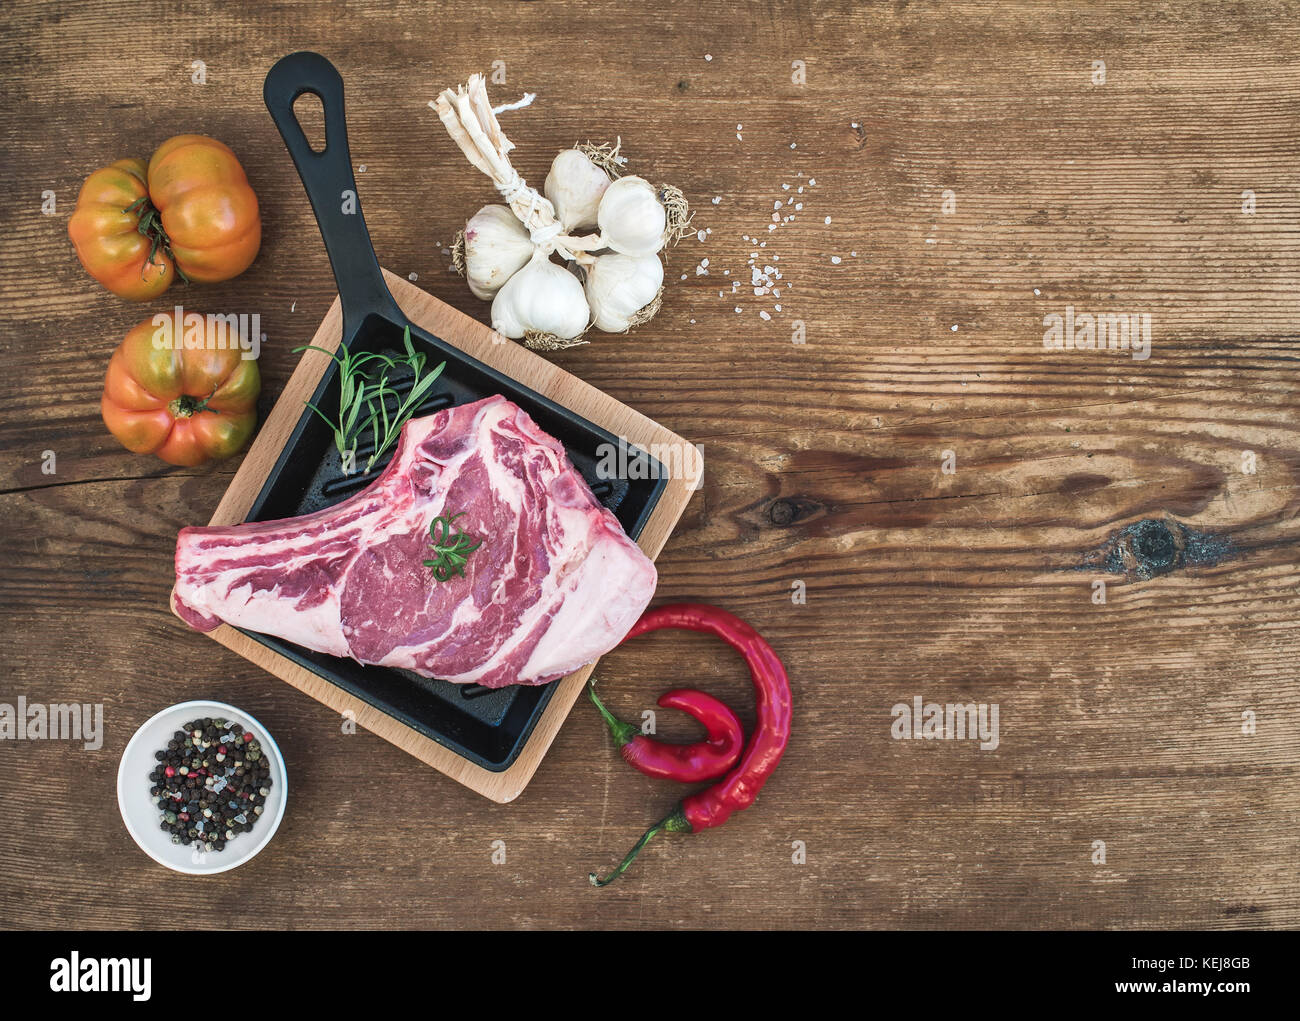 Raw fresh meat ribeye steak with pepper, salt, chili, garlic, spinach, heirloom tomatoes and rosemary in cooking - Stock Image